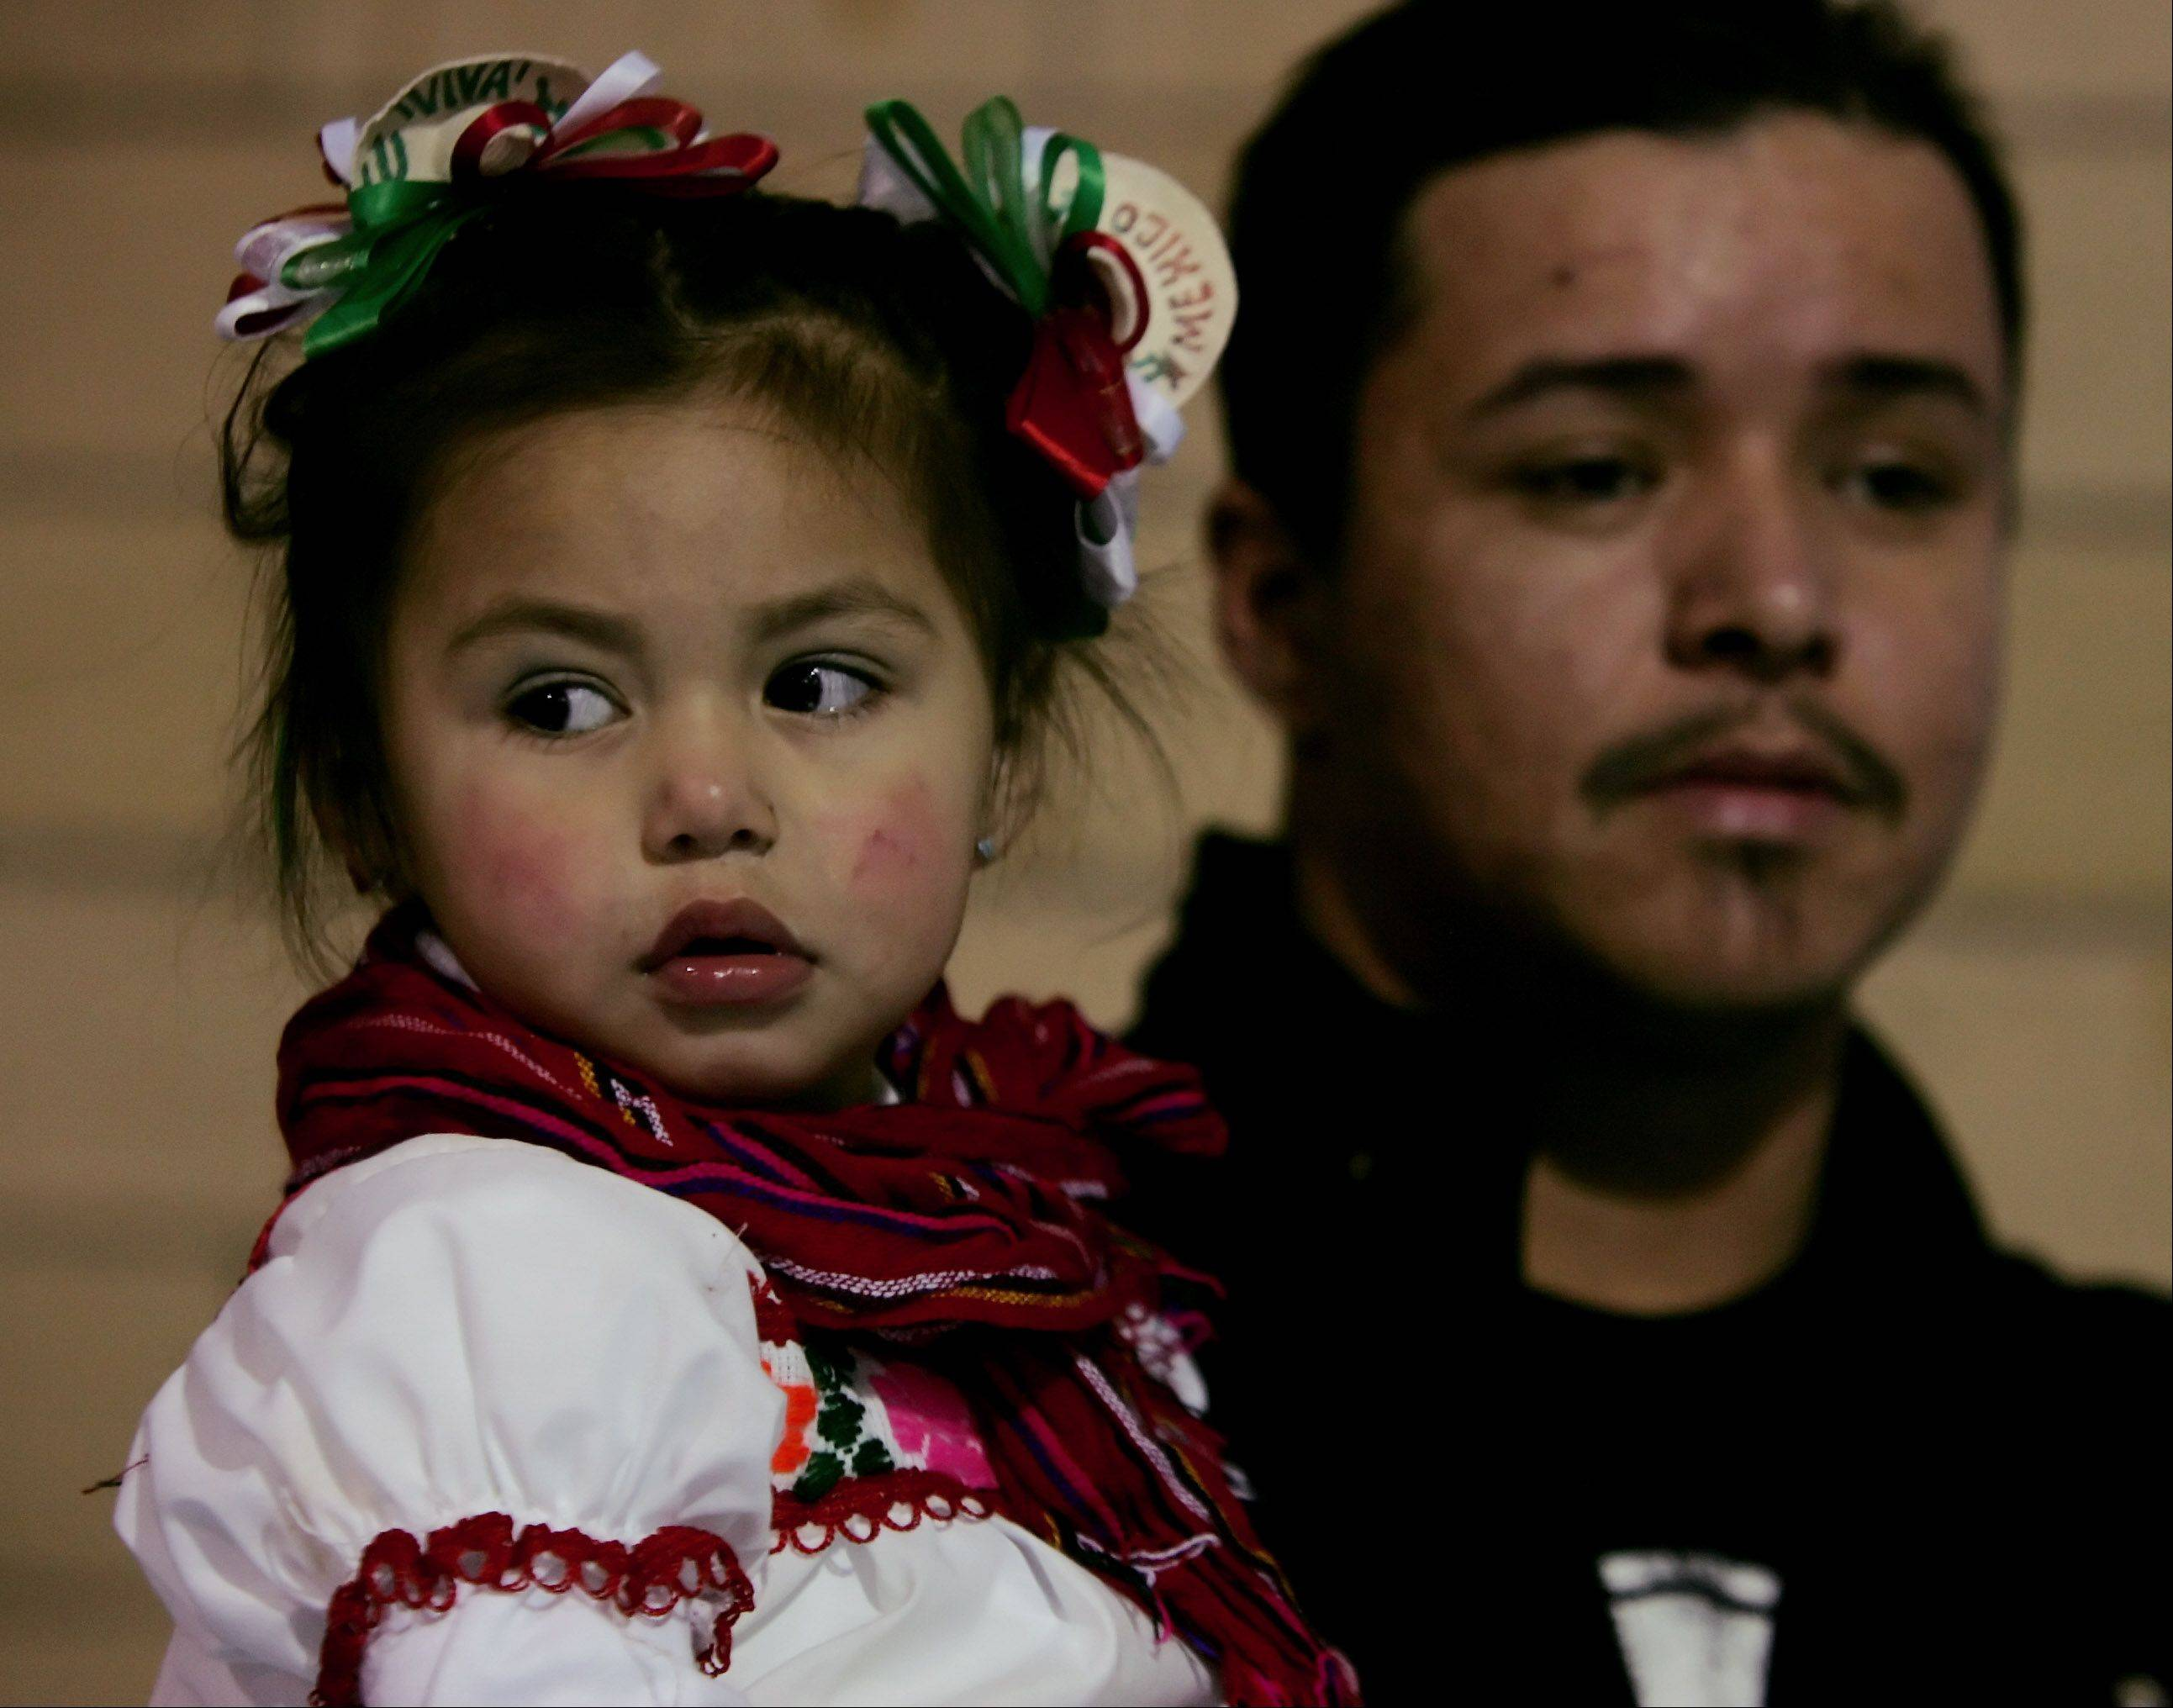 Angelina Diaz, 2, of Arlington Heights is held by her father, Javier, as they attend the Singing Rosary during the annual celebration honoring Our Lady of the Guadalupe Sunday at Maryville Academy in Des Plaines. Crowds in excess of 100,000 people are expected to attend the two day festival.